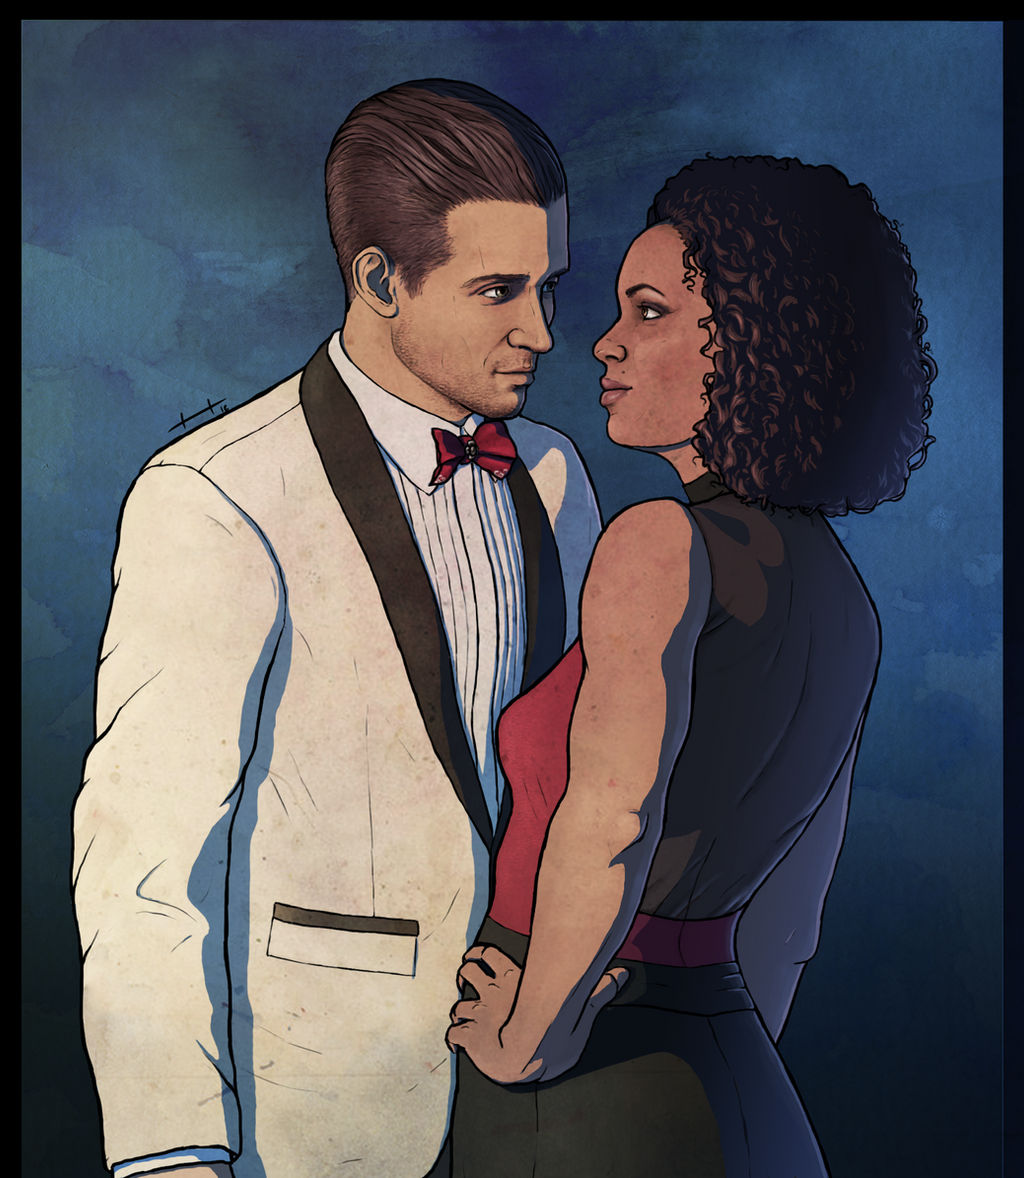 Nadine Ross And Rafe Adler Uncharted 4 By Searoth On Deviantart